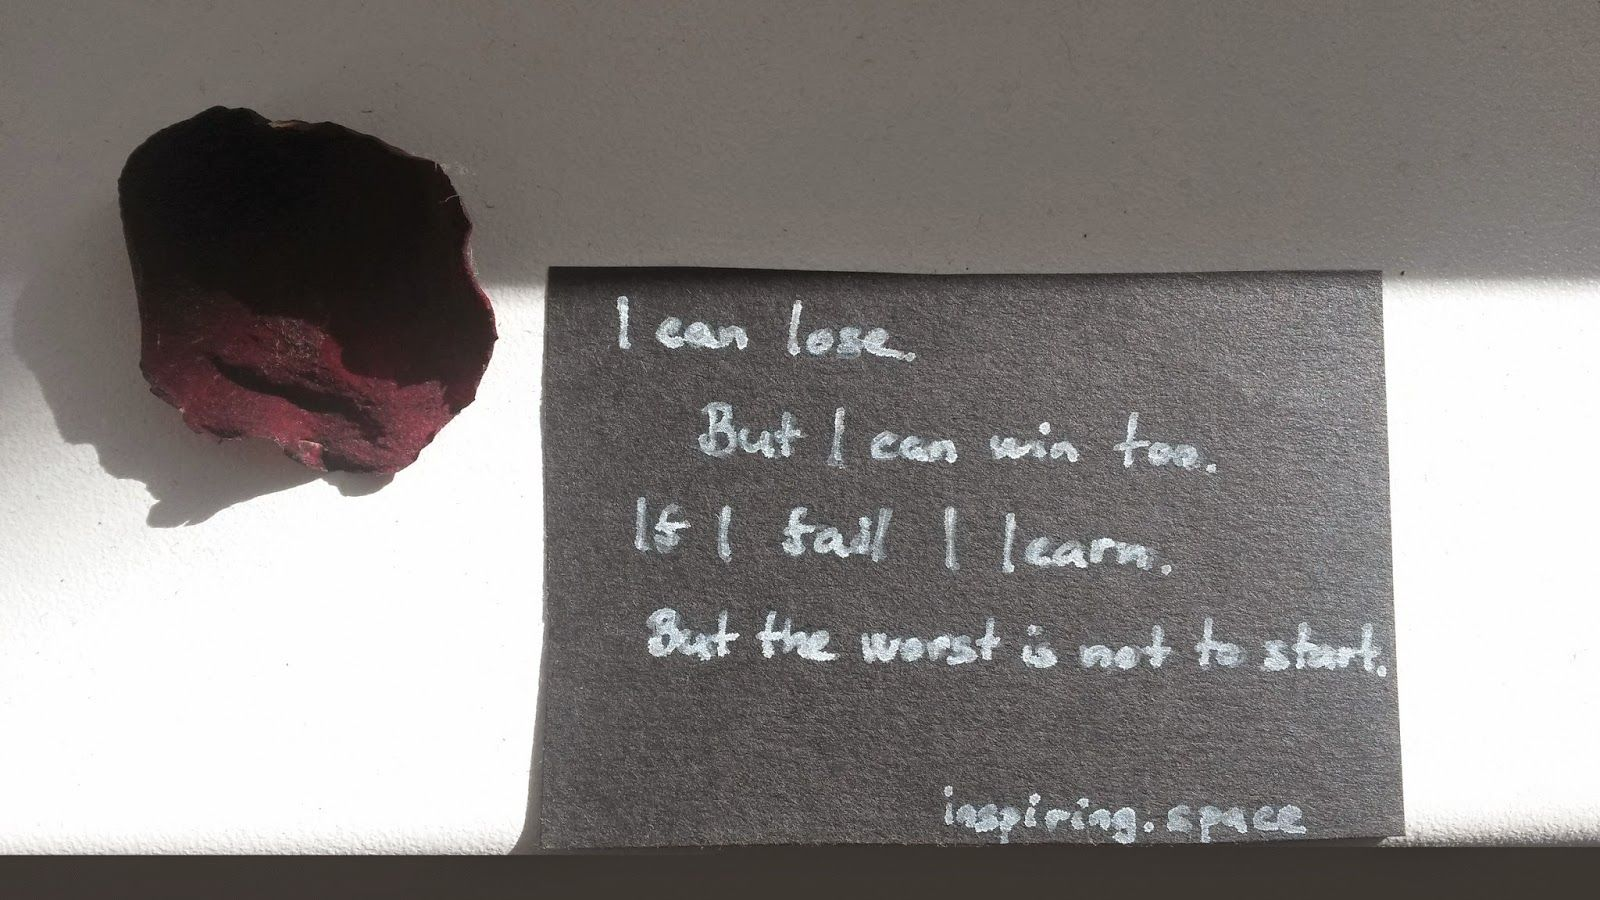 I can lose.   But I can win too.  If I fail I learn.   But the worst is not to start.